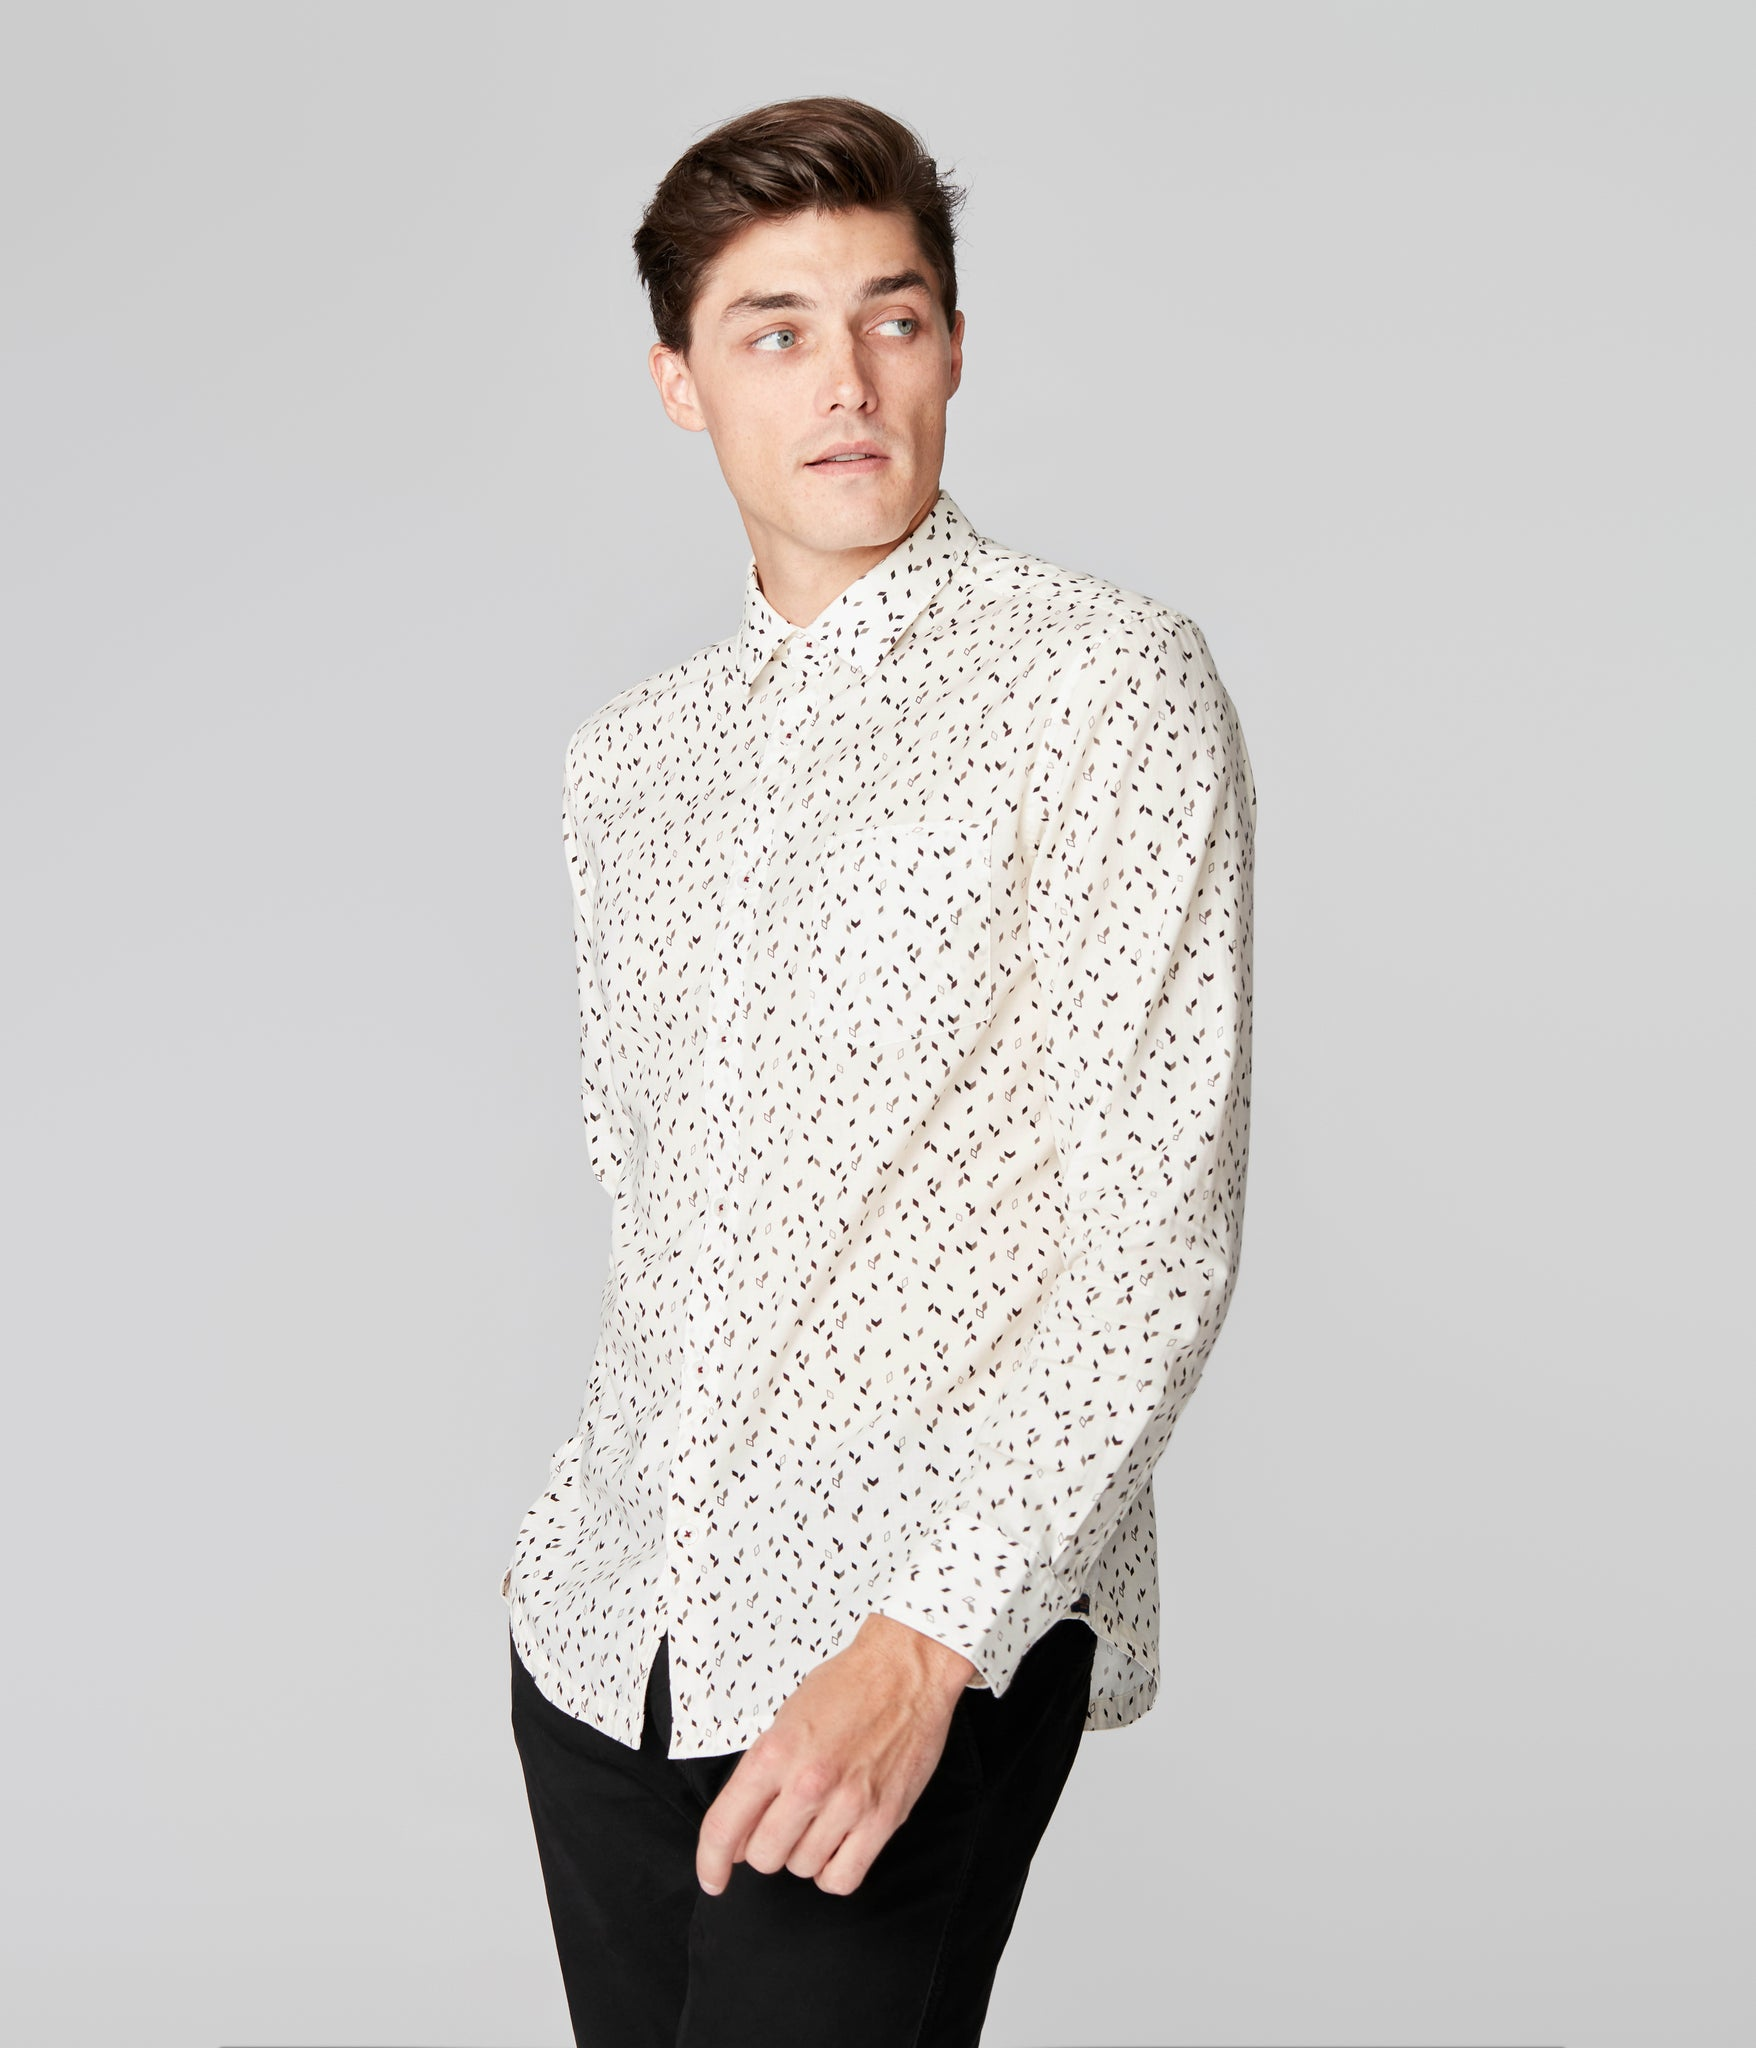 On-Point Print Shirt - Cream Falling Diamond